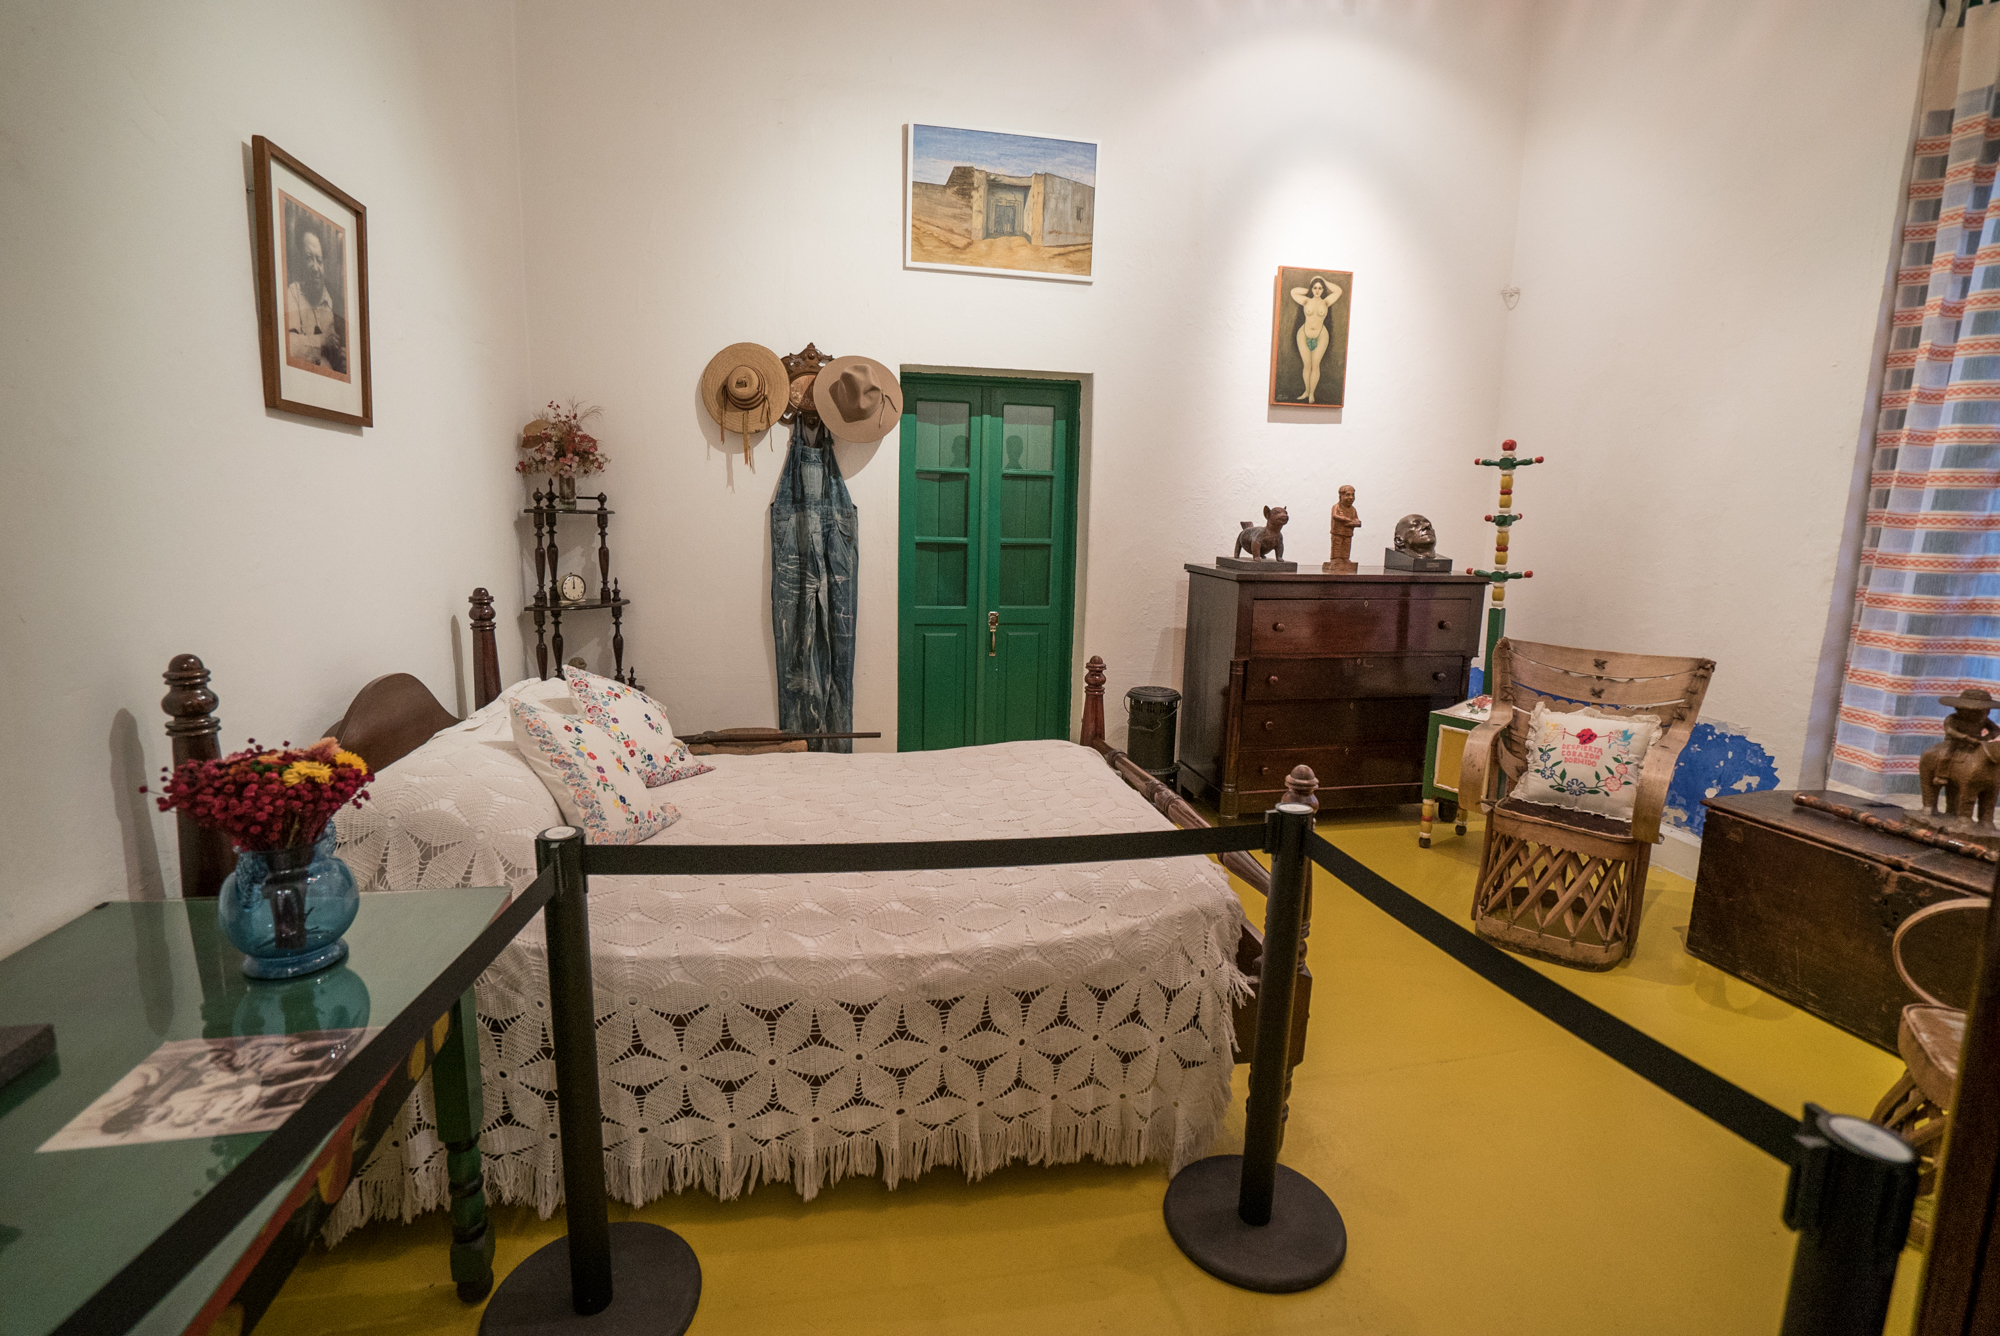 Mexico City Frida Khalo Museum-7.jpg